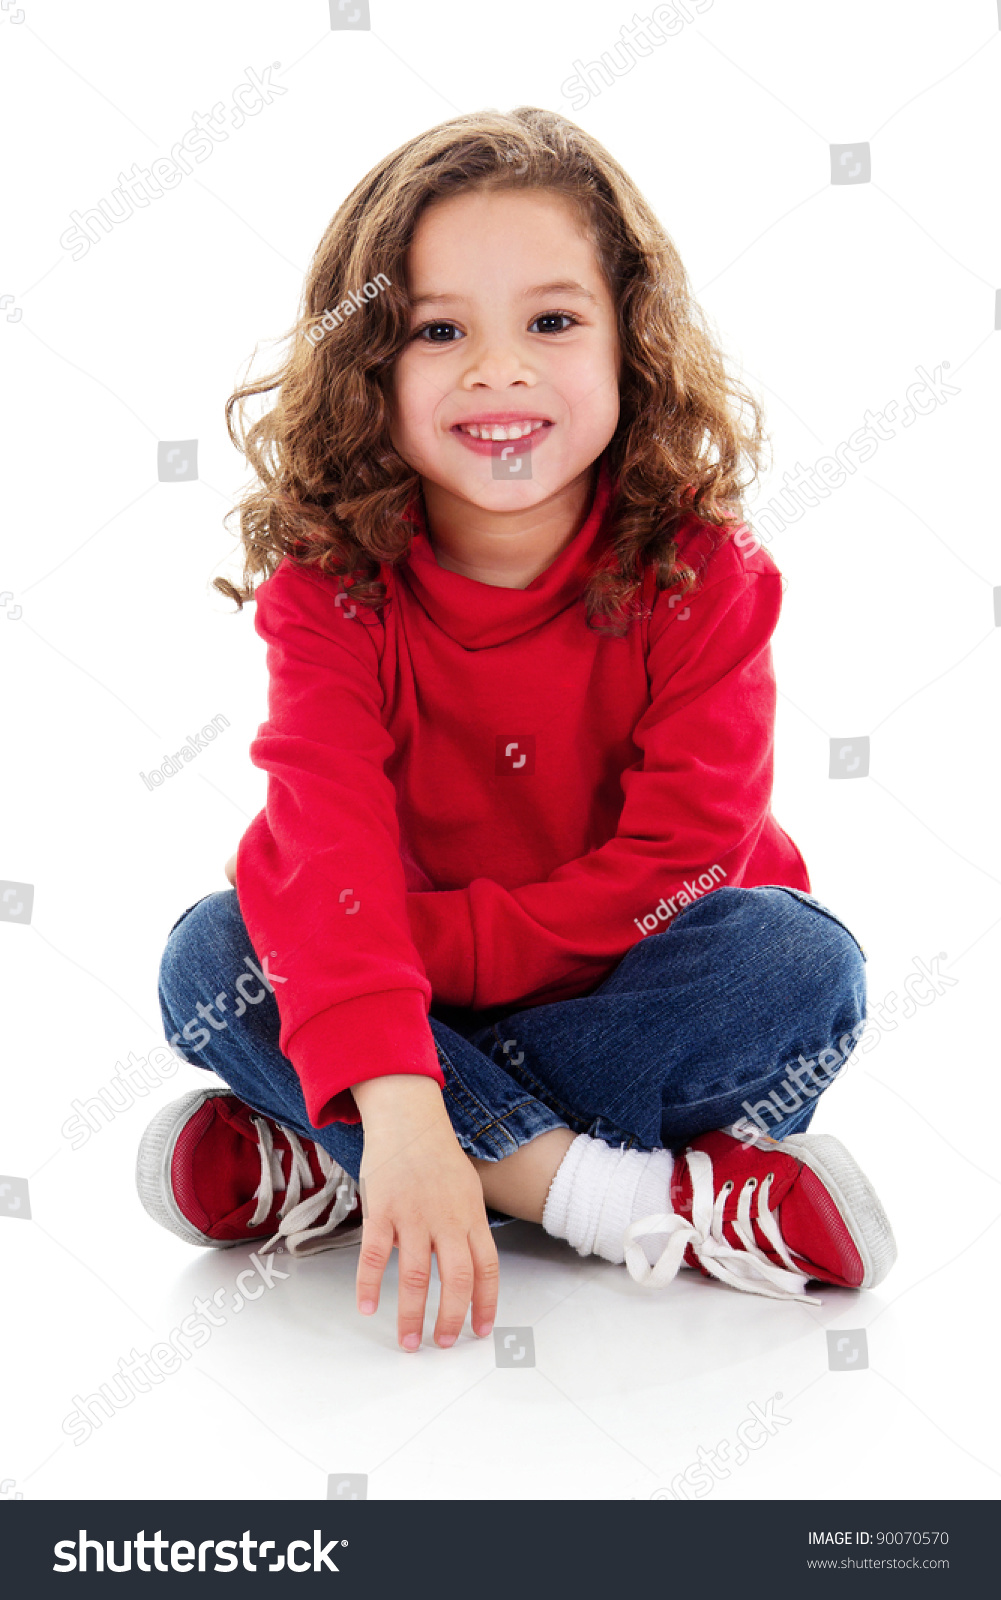 stock image cute little girl sitting stock photo (download now